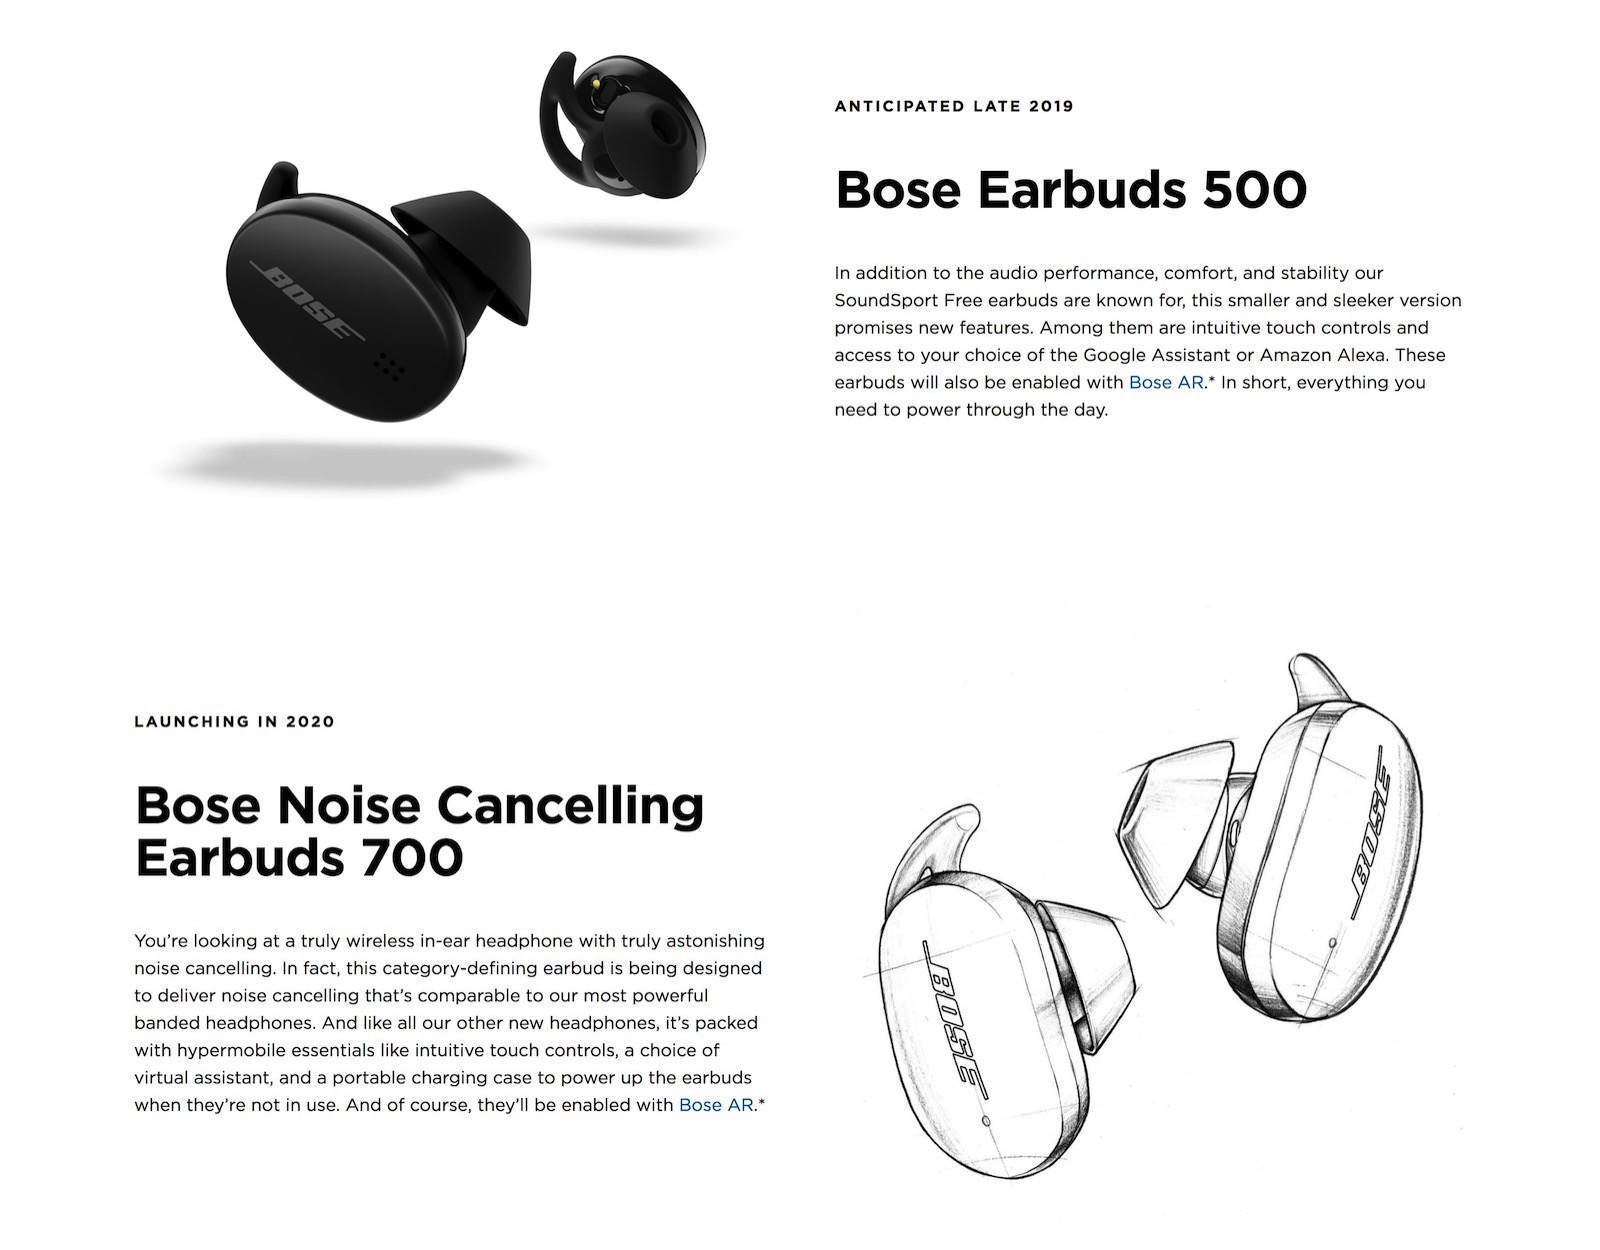 Bose Earbuds with noise cancelling